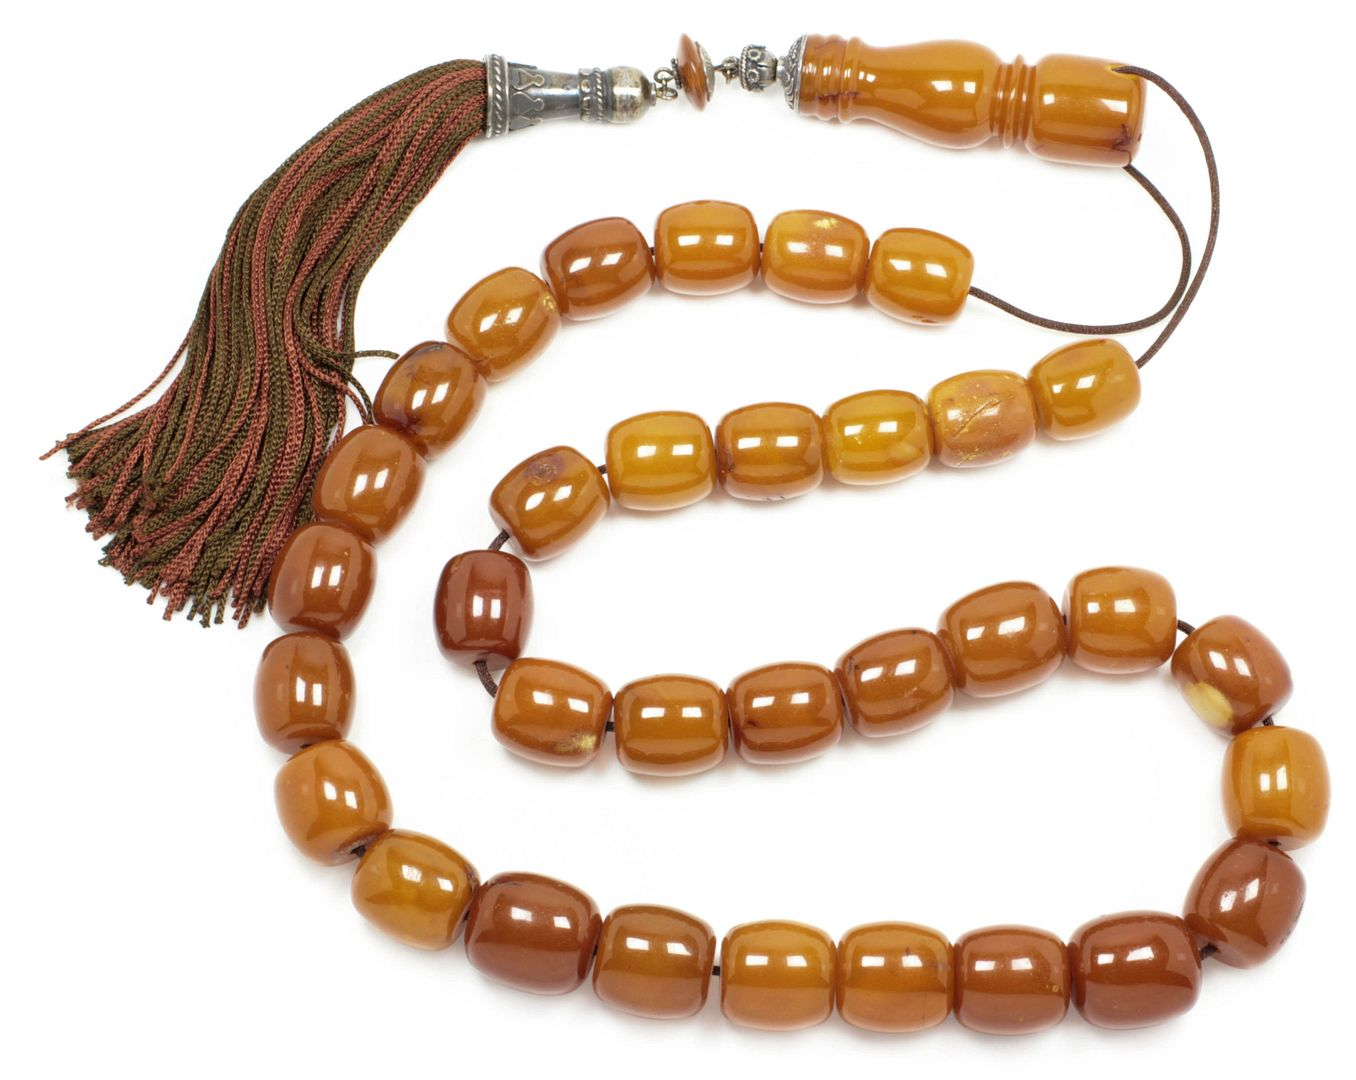 Prayer Beads-Tasbih-Masbaha-Komboloi ~ Collectible, Antique Amber-Kahraman - Extra Large 